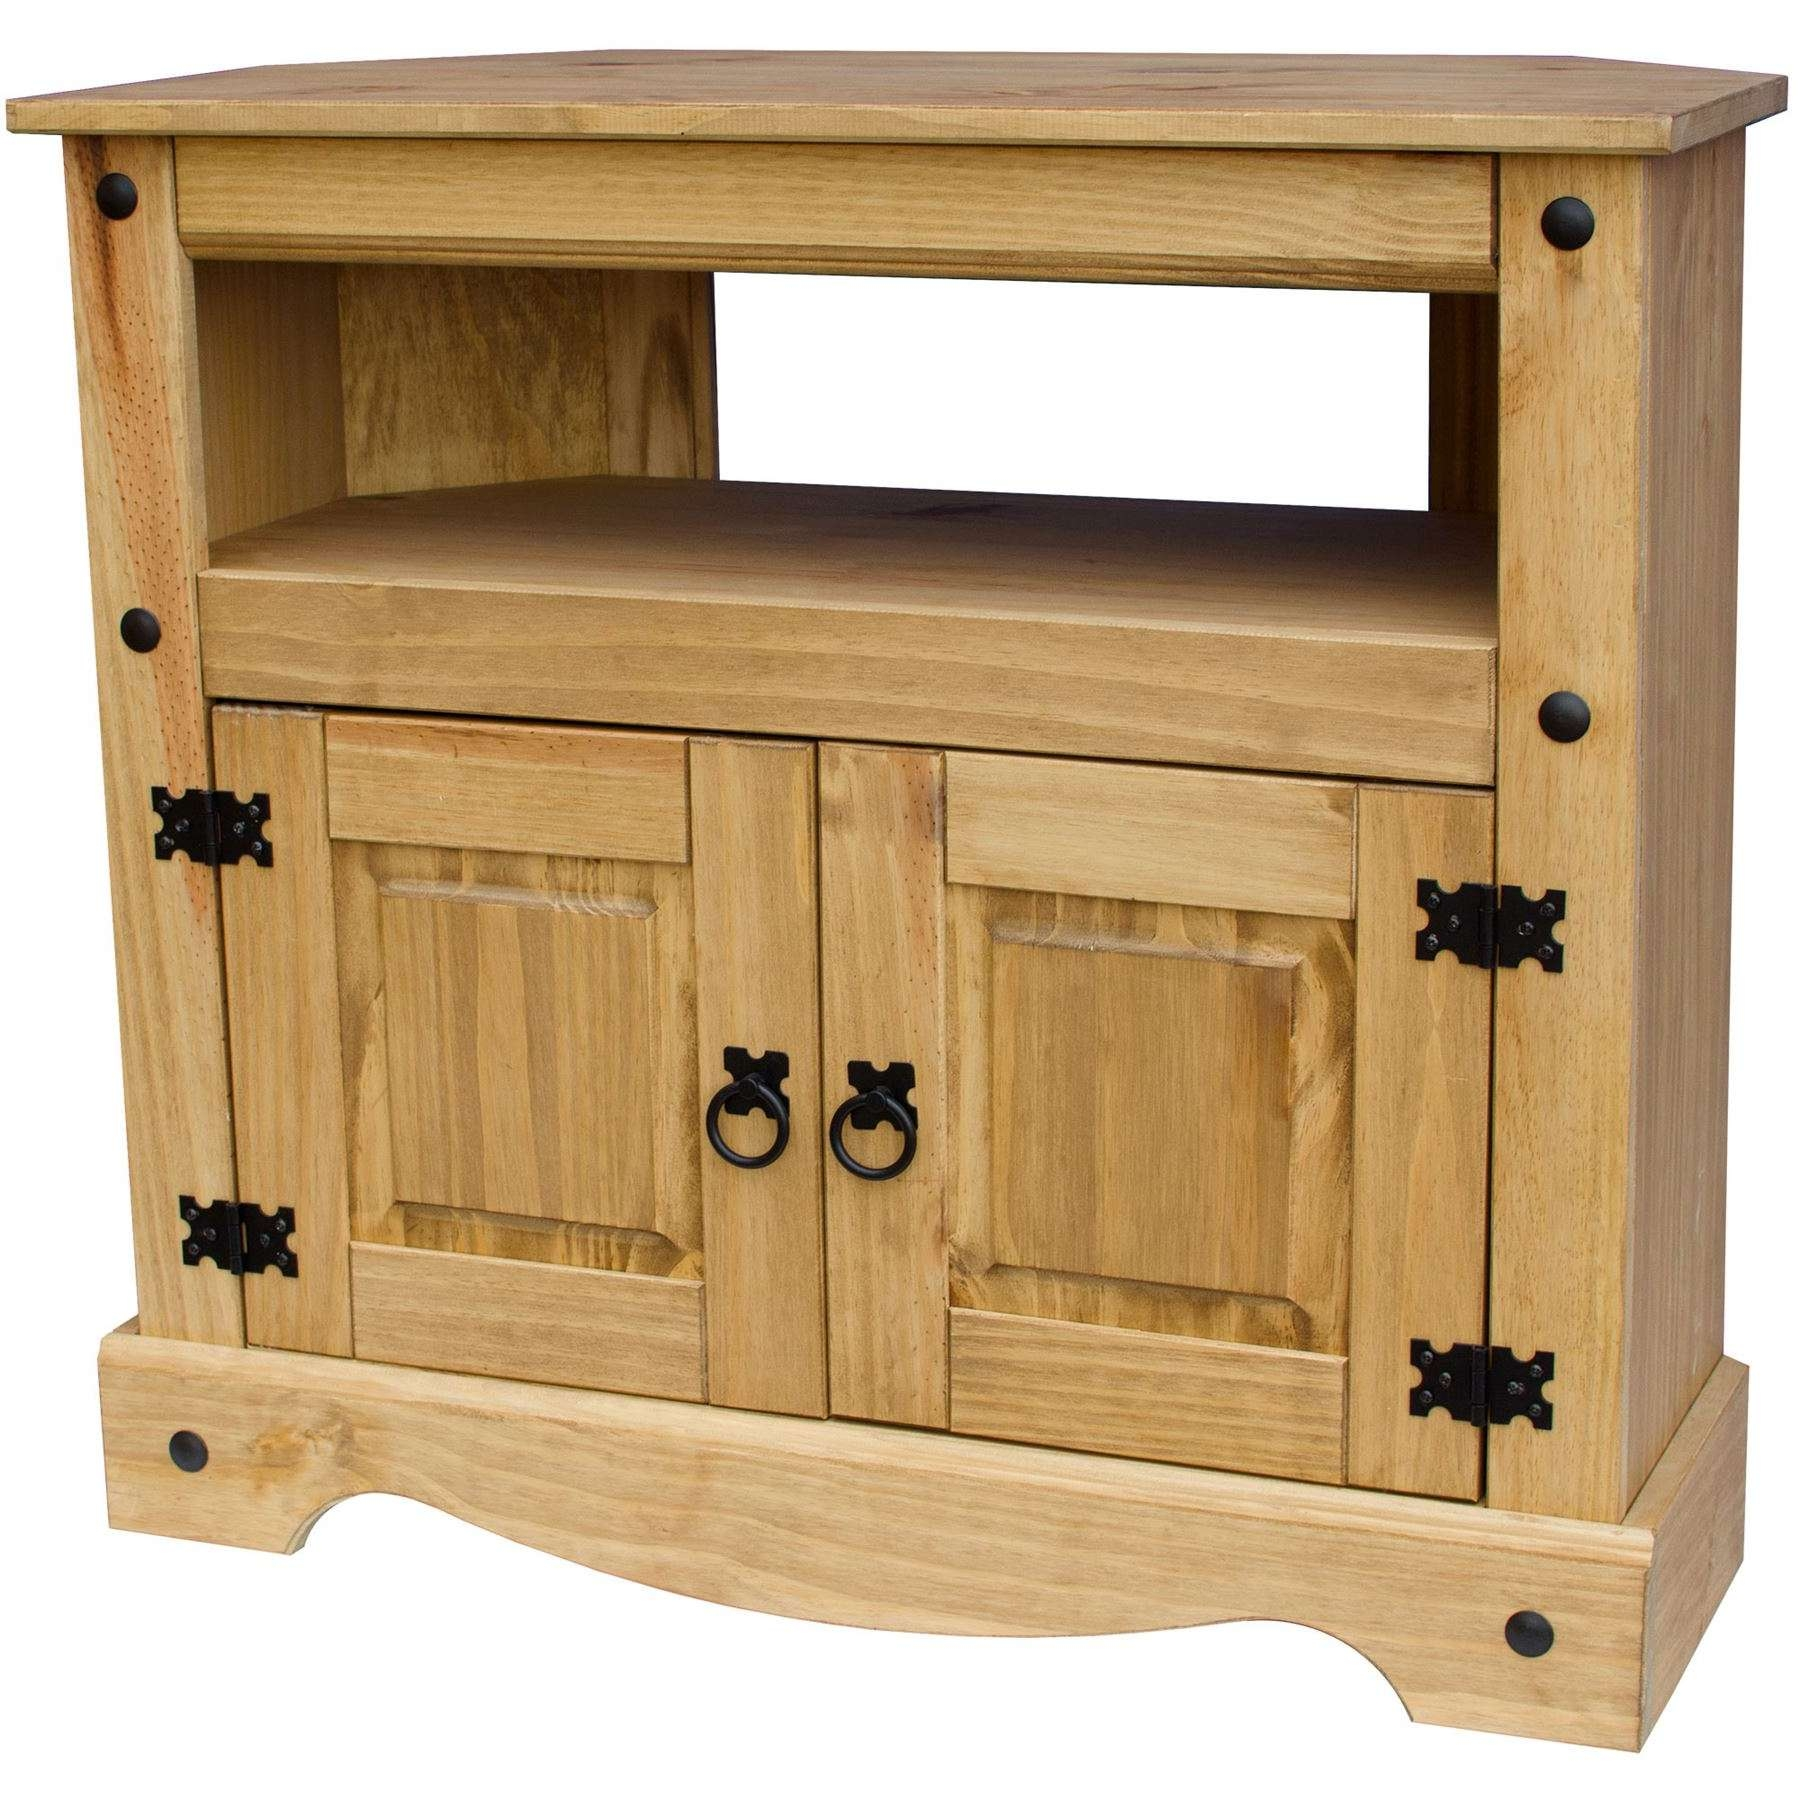 Corona Panama Tv Cabinet Media Dvd Unit Solid Pine Wood Mexican Pertaining To Solid Pine Tv Cabinets (View 3 of 20)